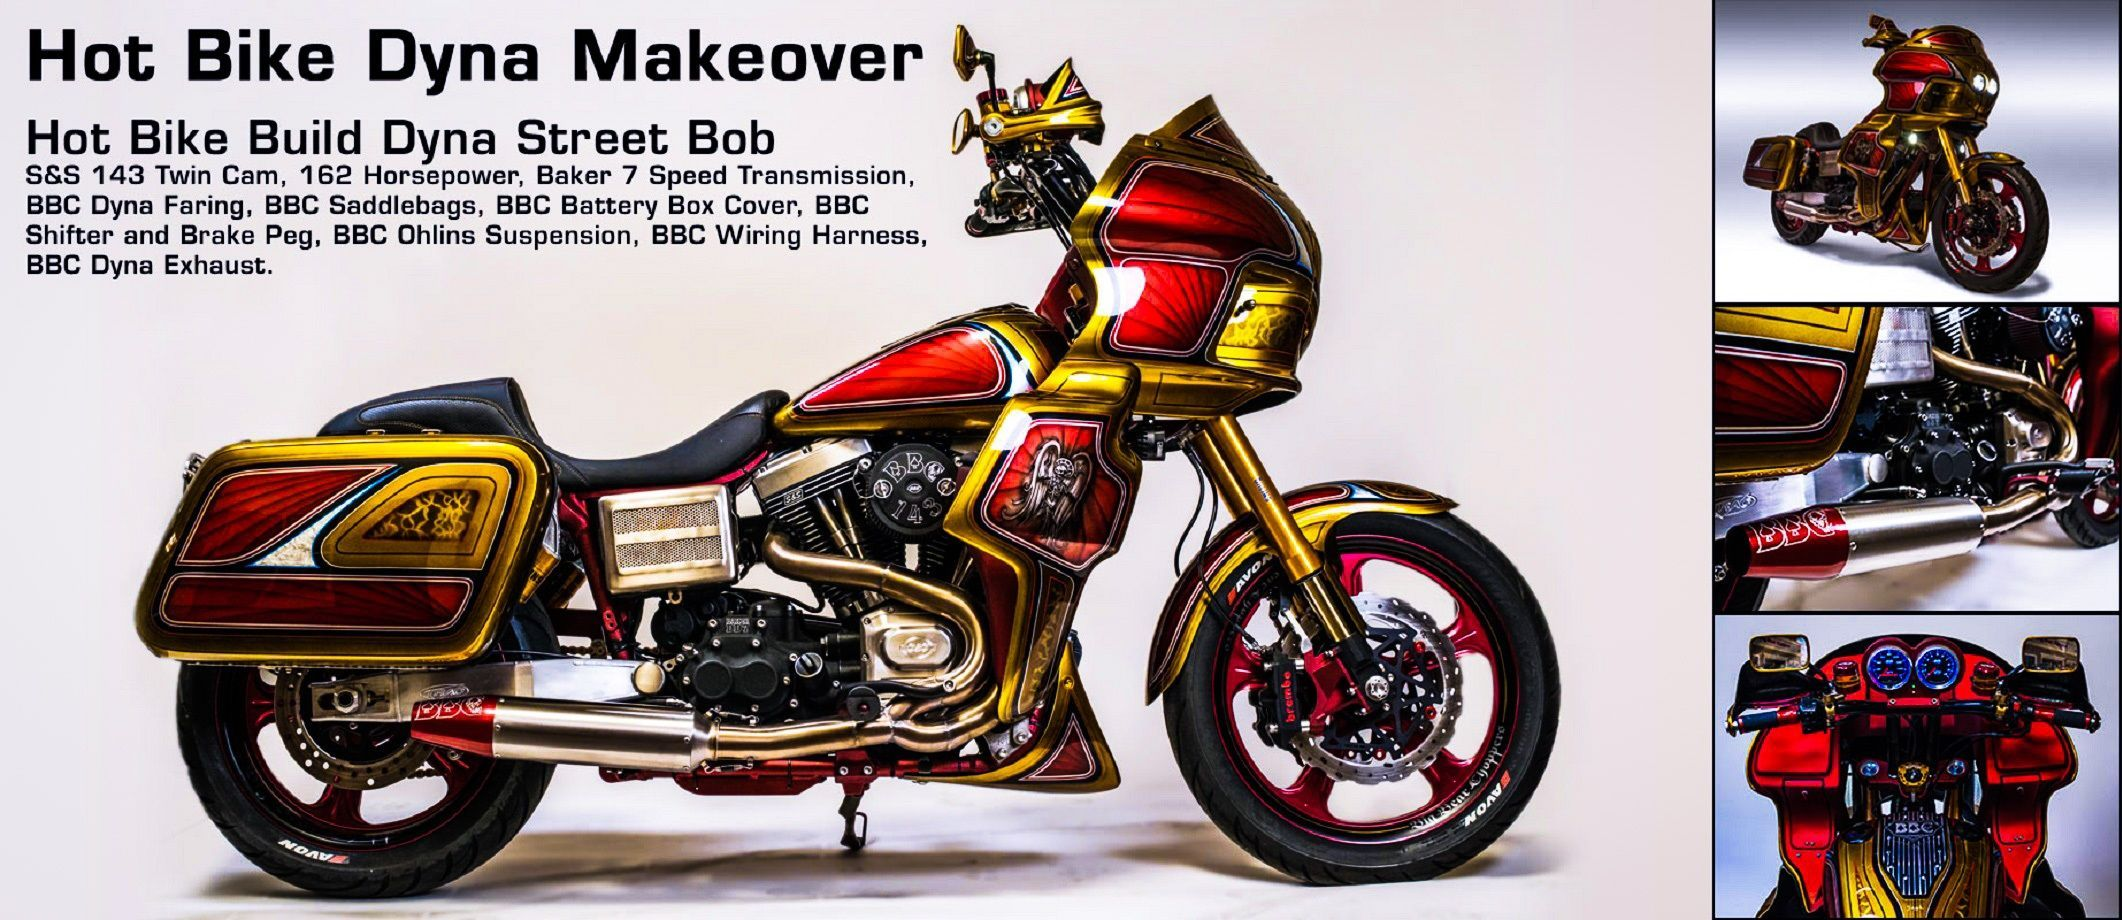 Big Bear Choppers - Titanium Dyna Makeover. http://store ...